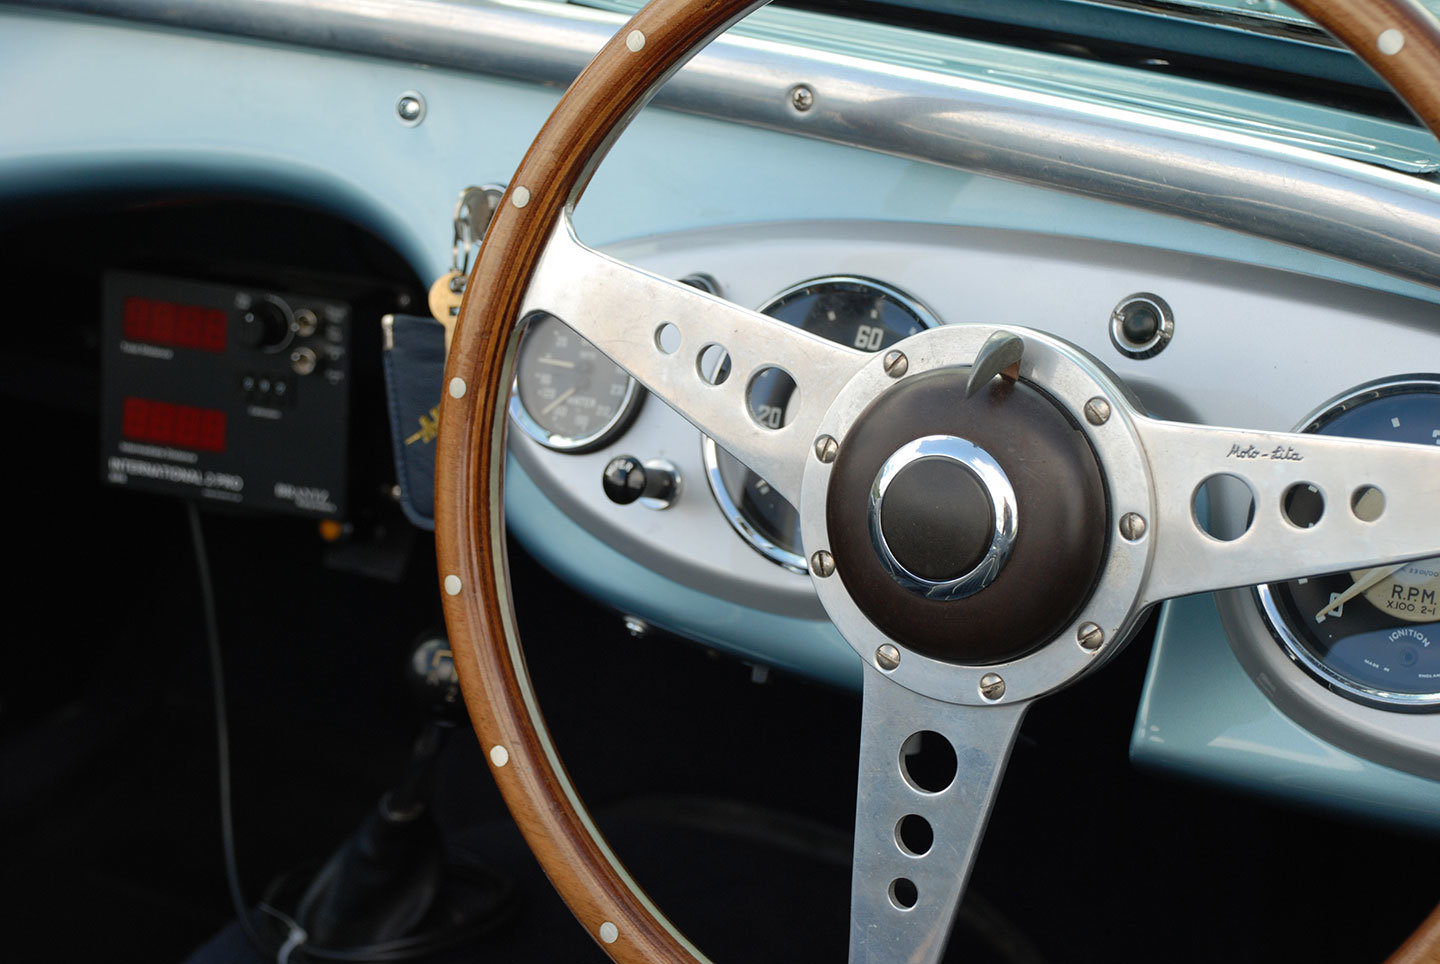 1955 Austin Healey 100/4 BN2 M Specification For Sale (picture 9 of 10)